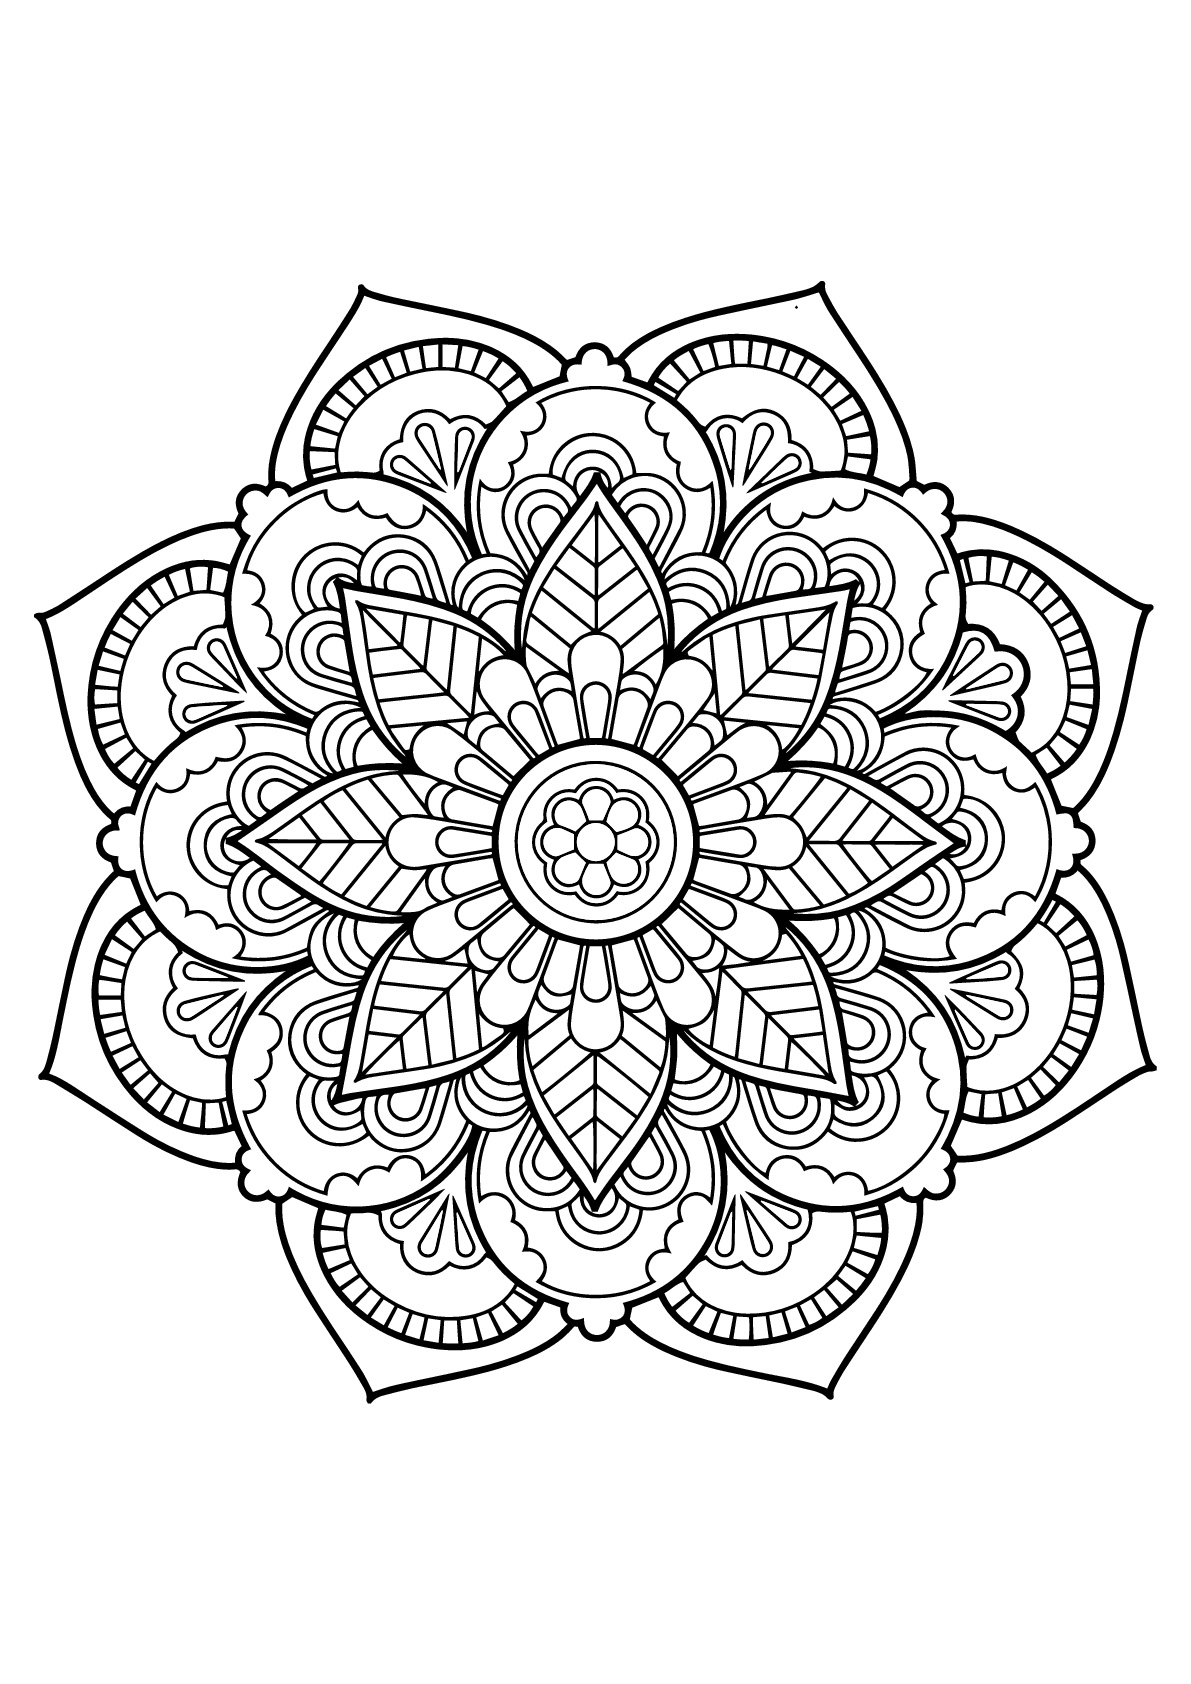 mandalas to color for adults mandala from free coloring books for adults 22 malas for color mandalas adults to